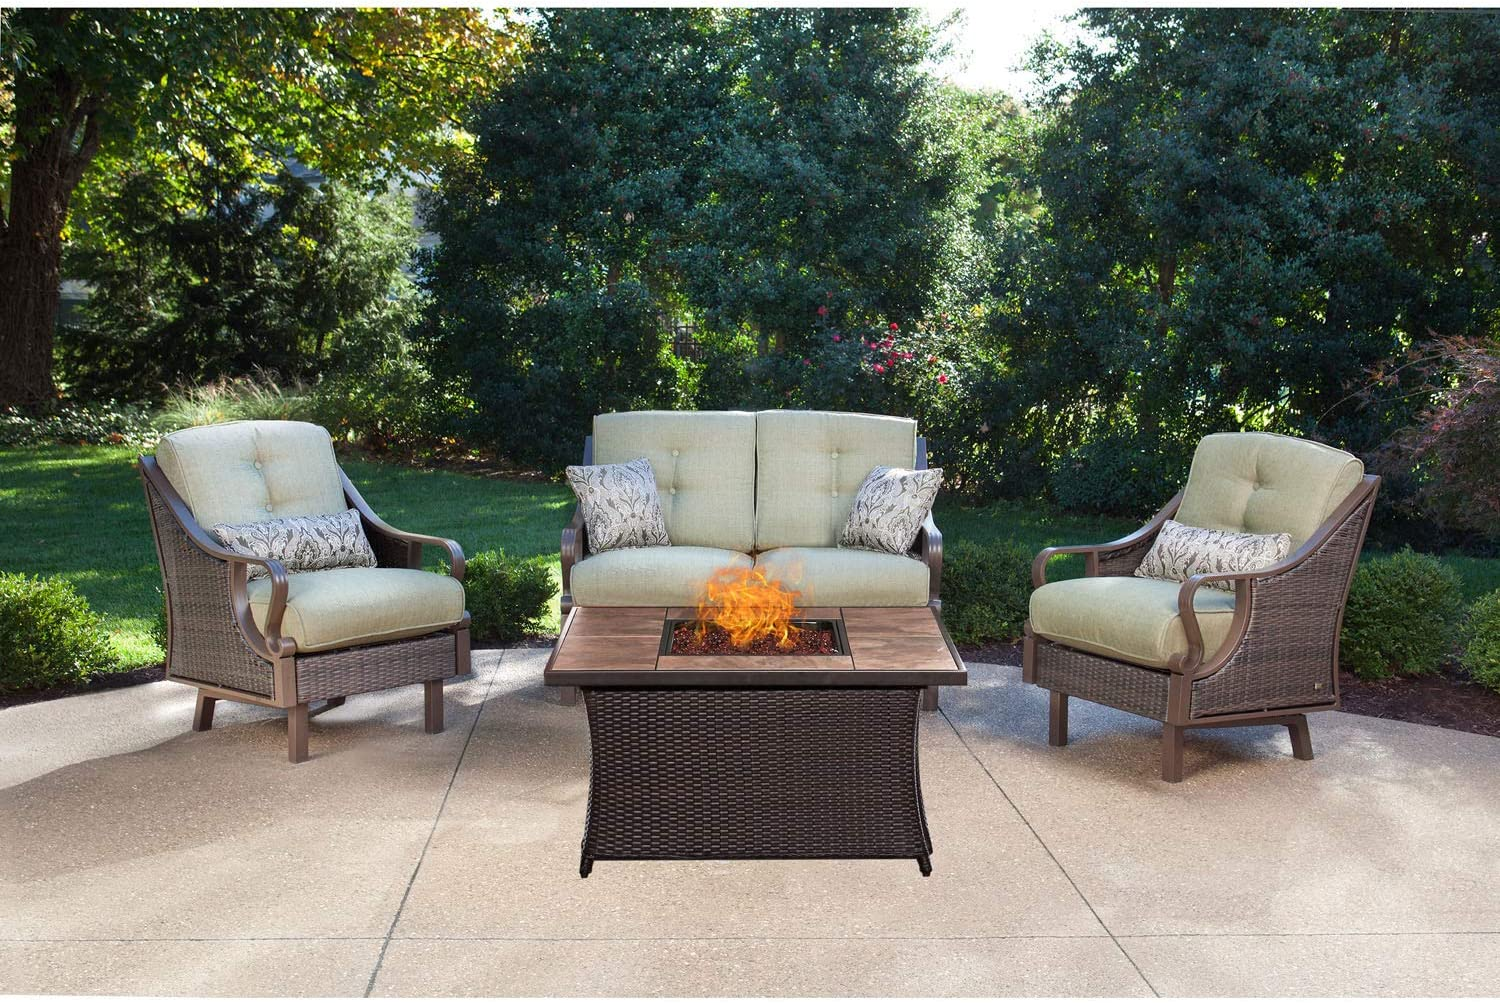 Hanover VEN4PCFP-GRN-TN 4 Piece Ventura Fire Pit Chat Set in Vintage Meadow